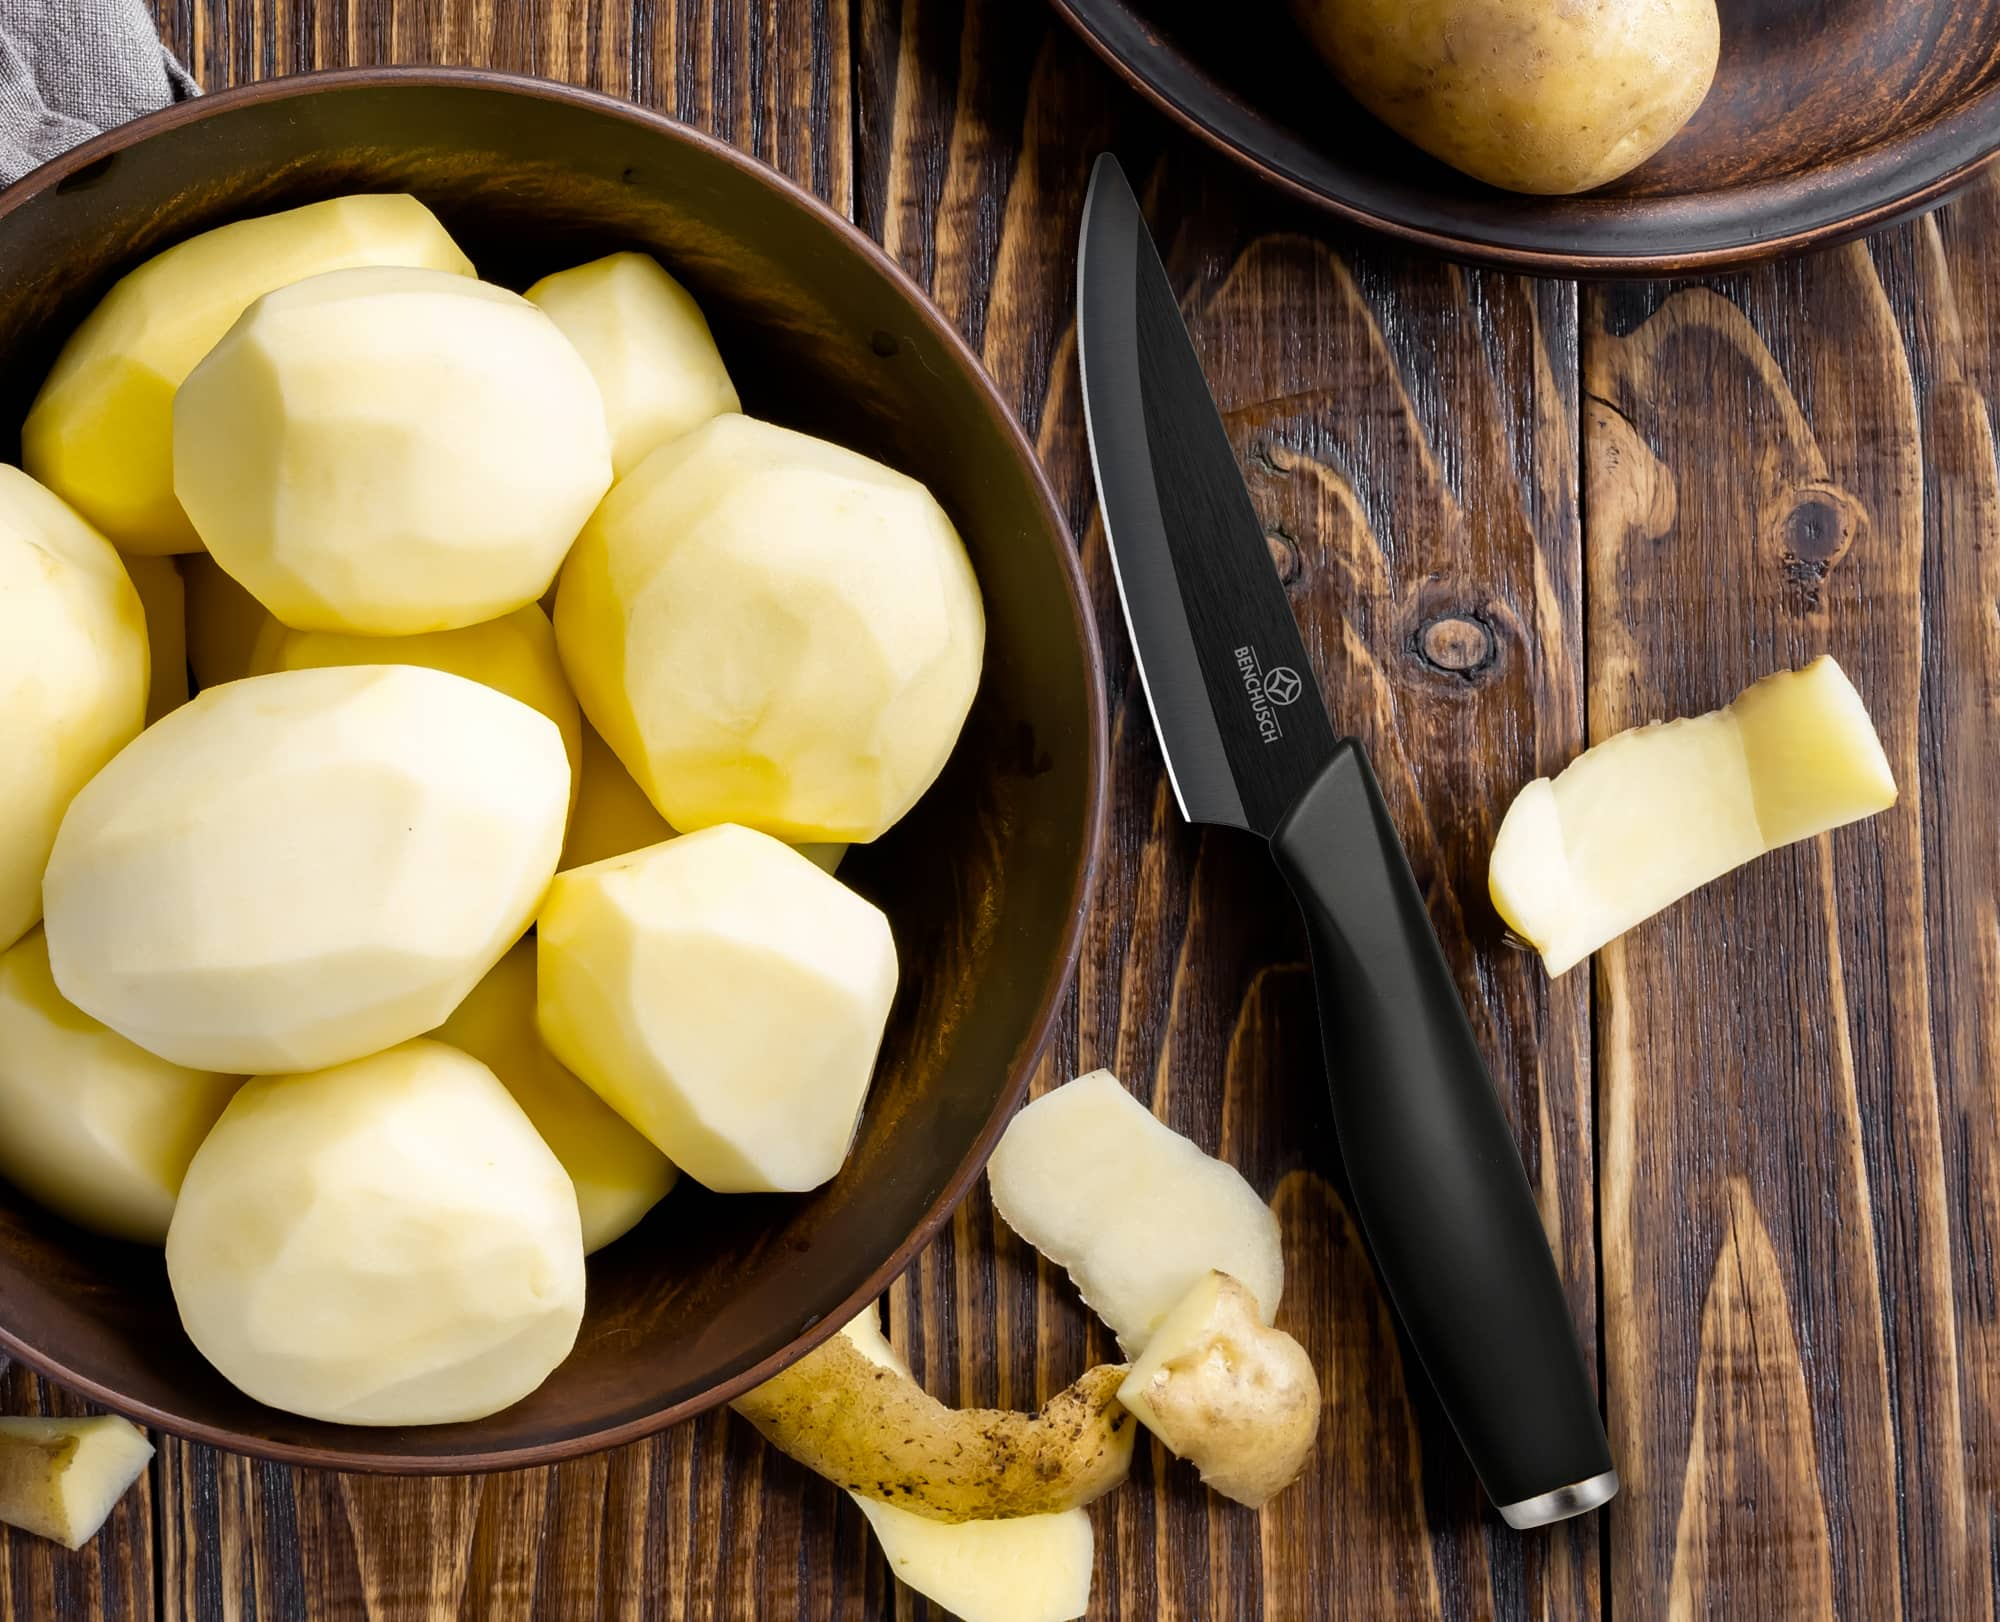 Peeling potatoes with Benchusch Zirconia Series Ceramic Paring Knife on the wooden table